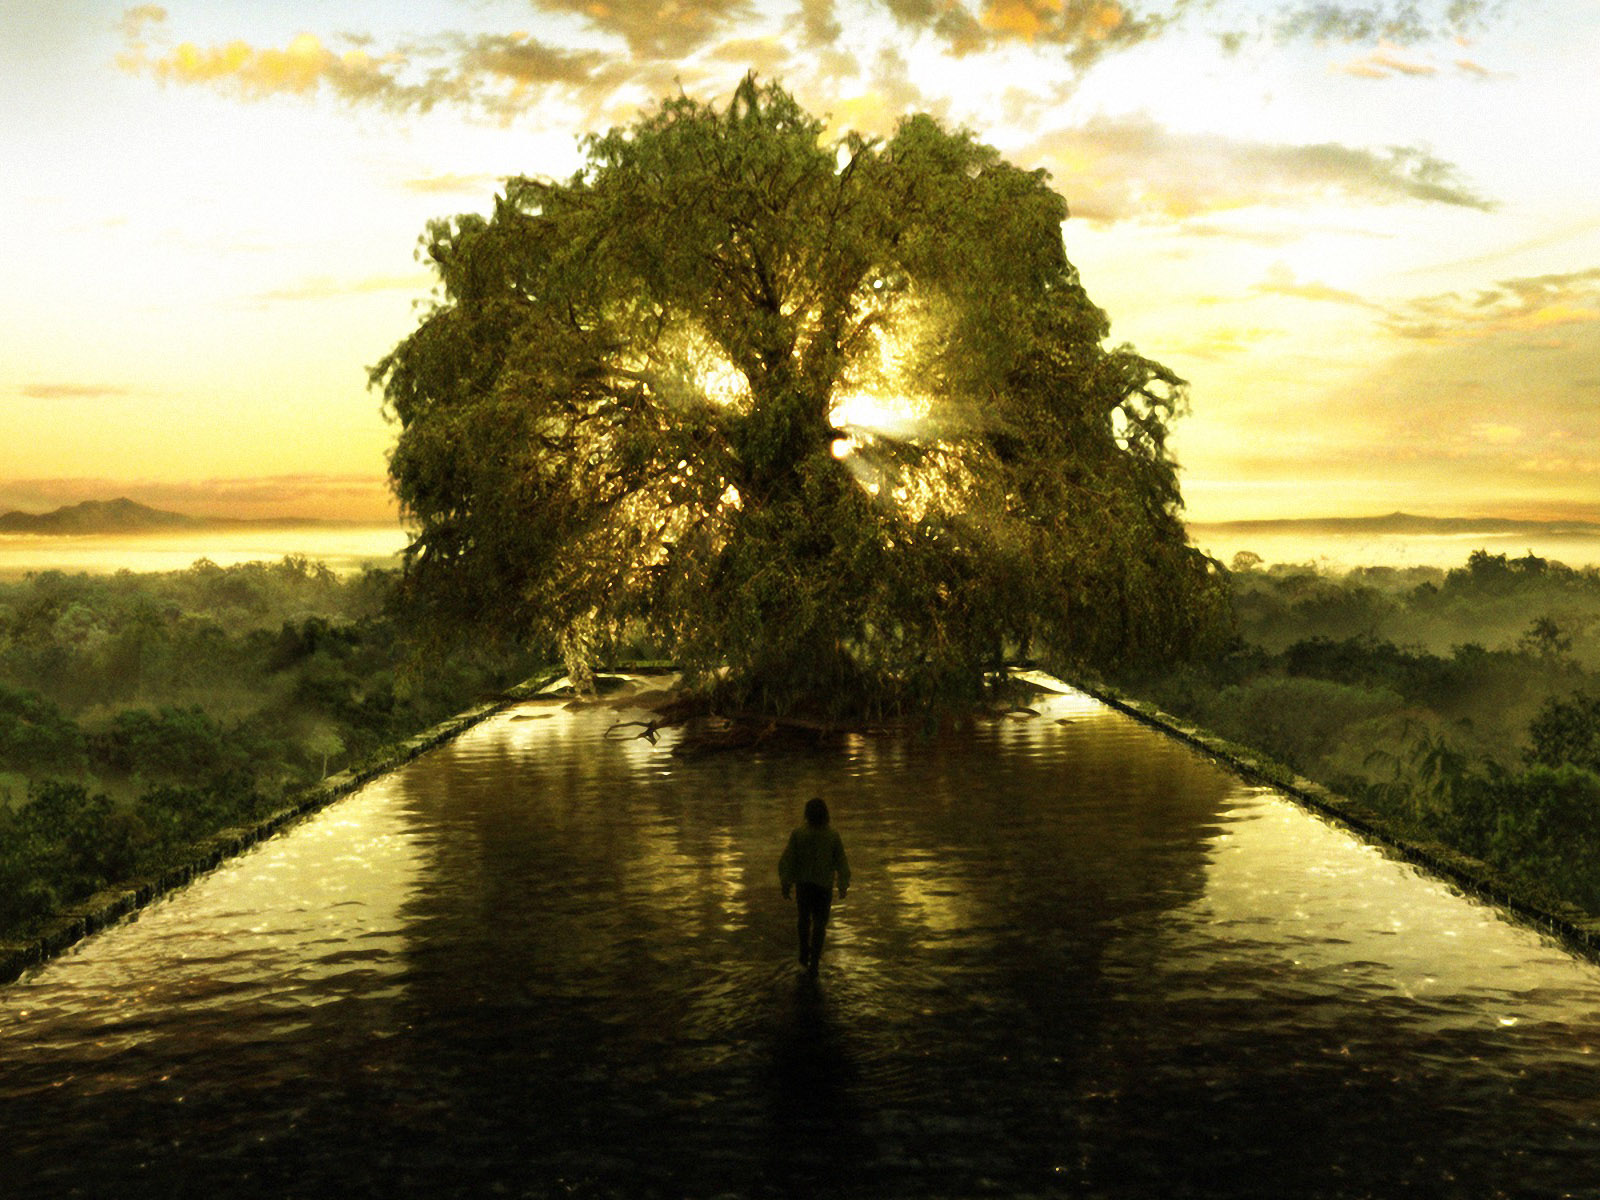 The Tree of Life HD 1600x1200 Wallpapers 1600x1200 Wallpapers 1600x1200